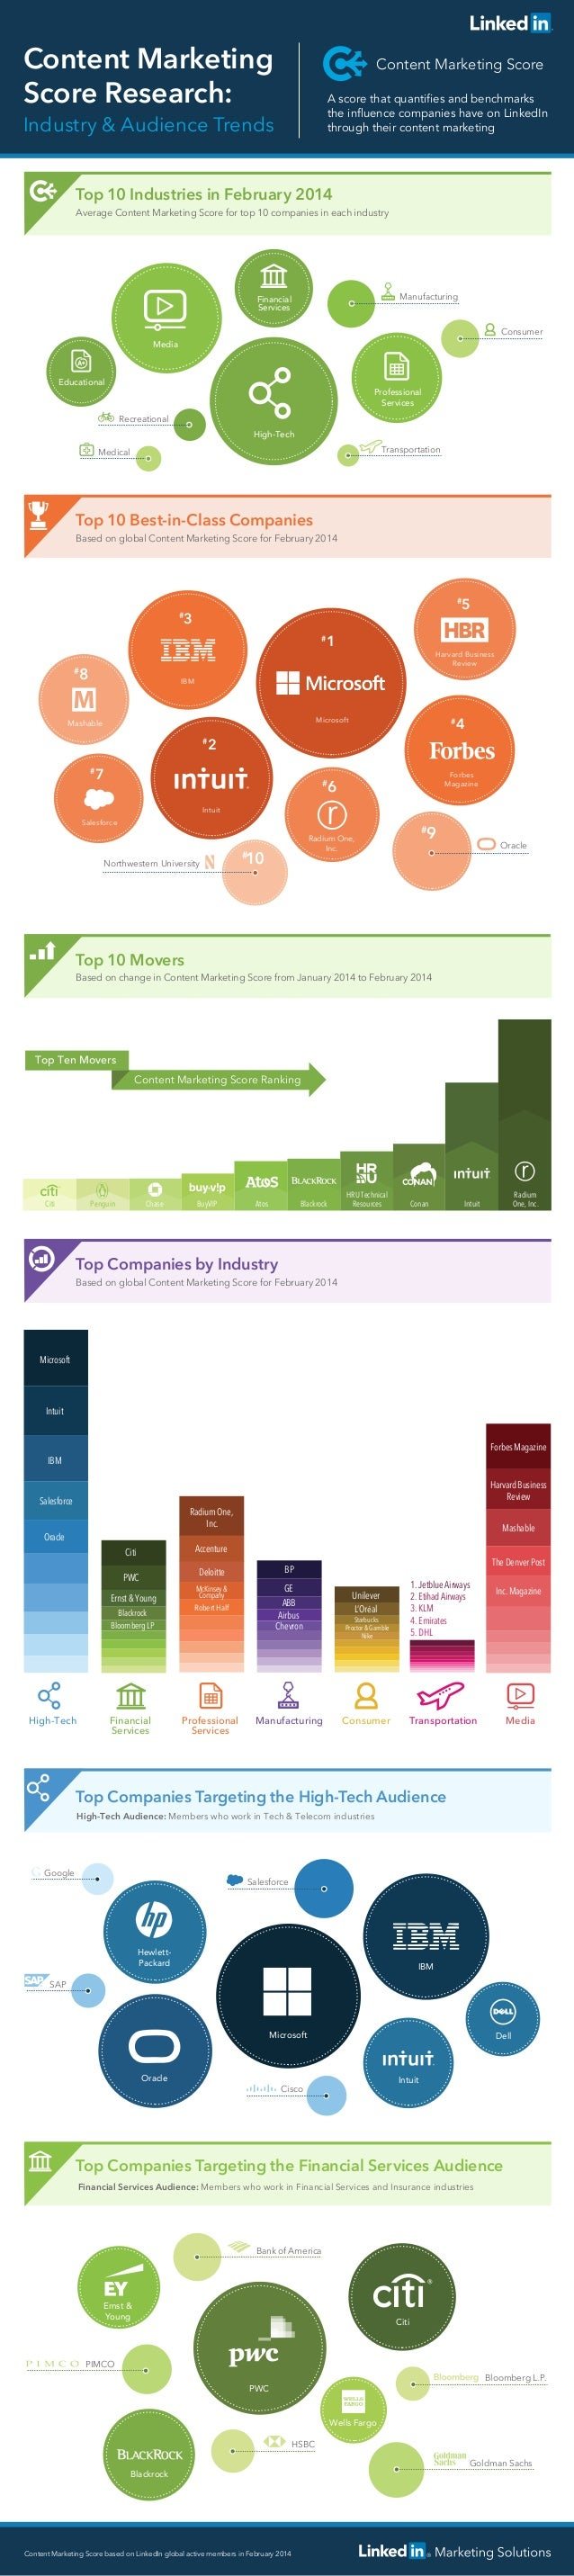 Content Marketing ScoreContent Marketing Score Research: Top 10 Industries in February 2014 Average Content Marketing Scor...